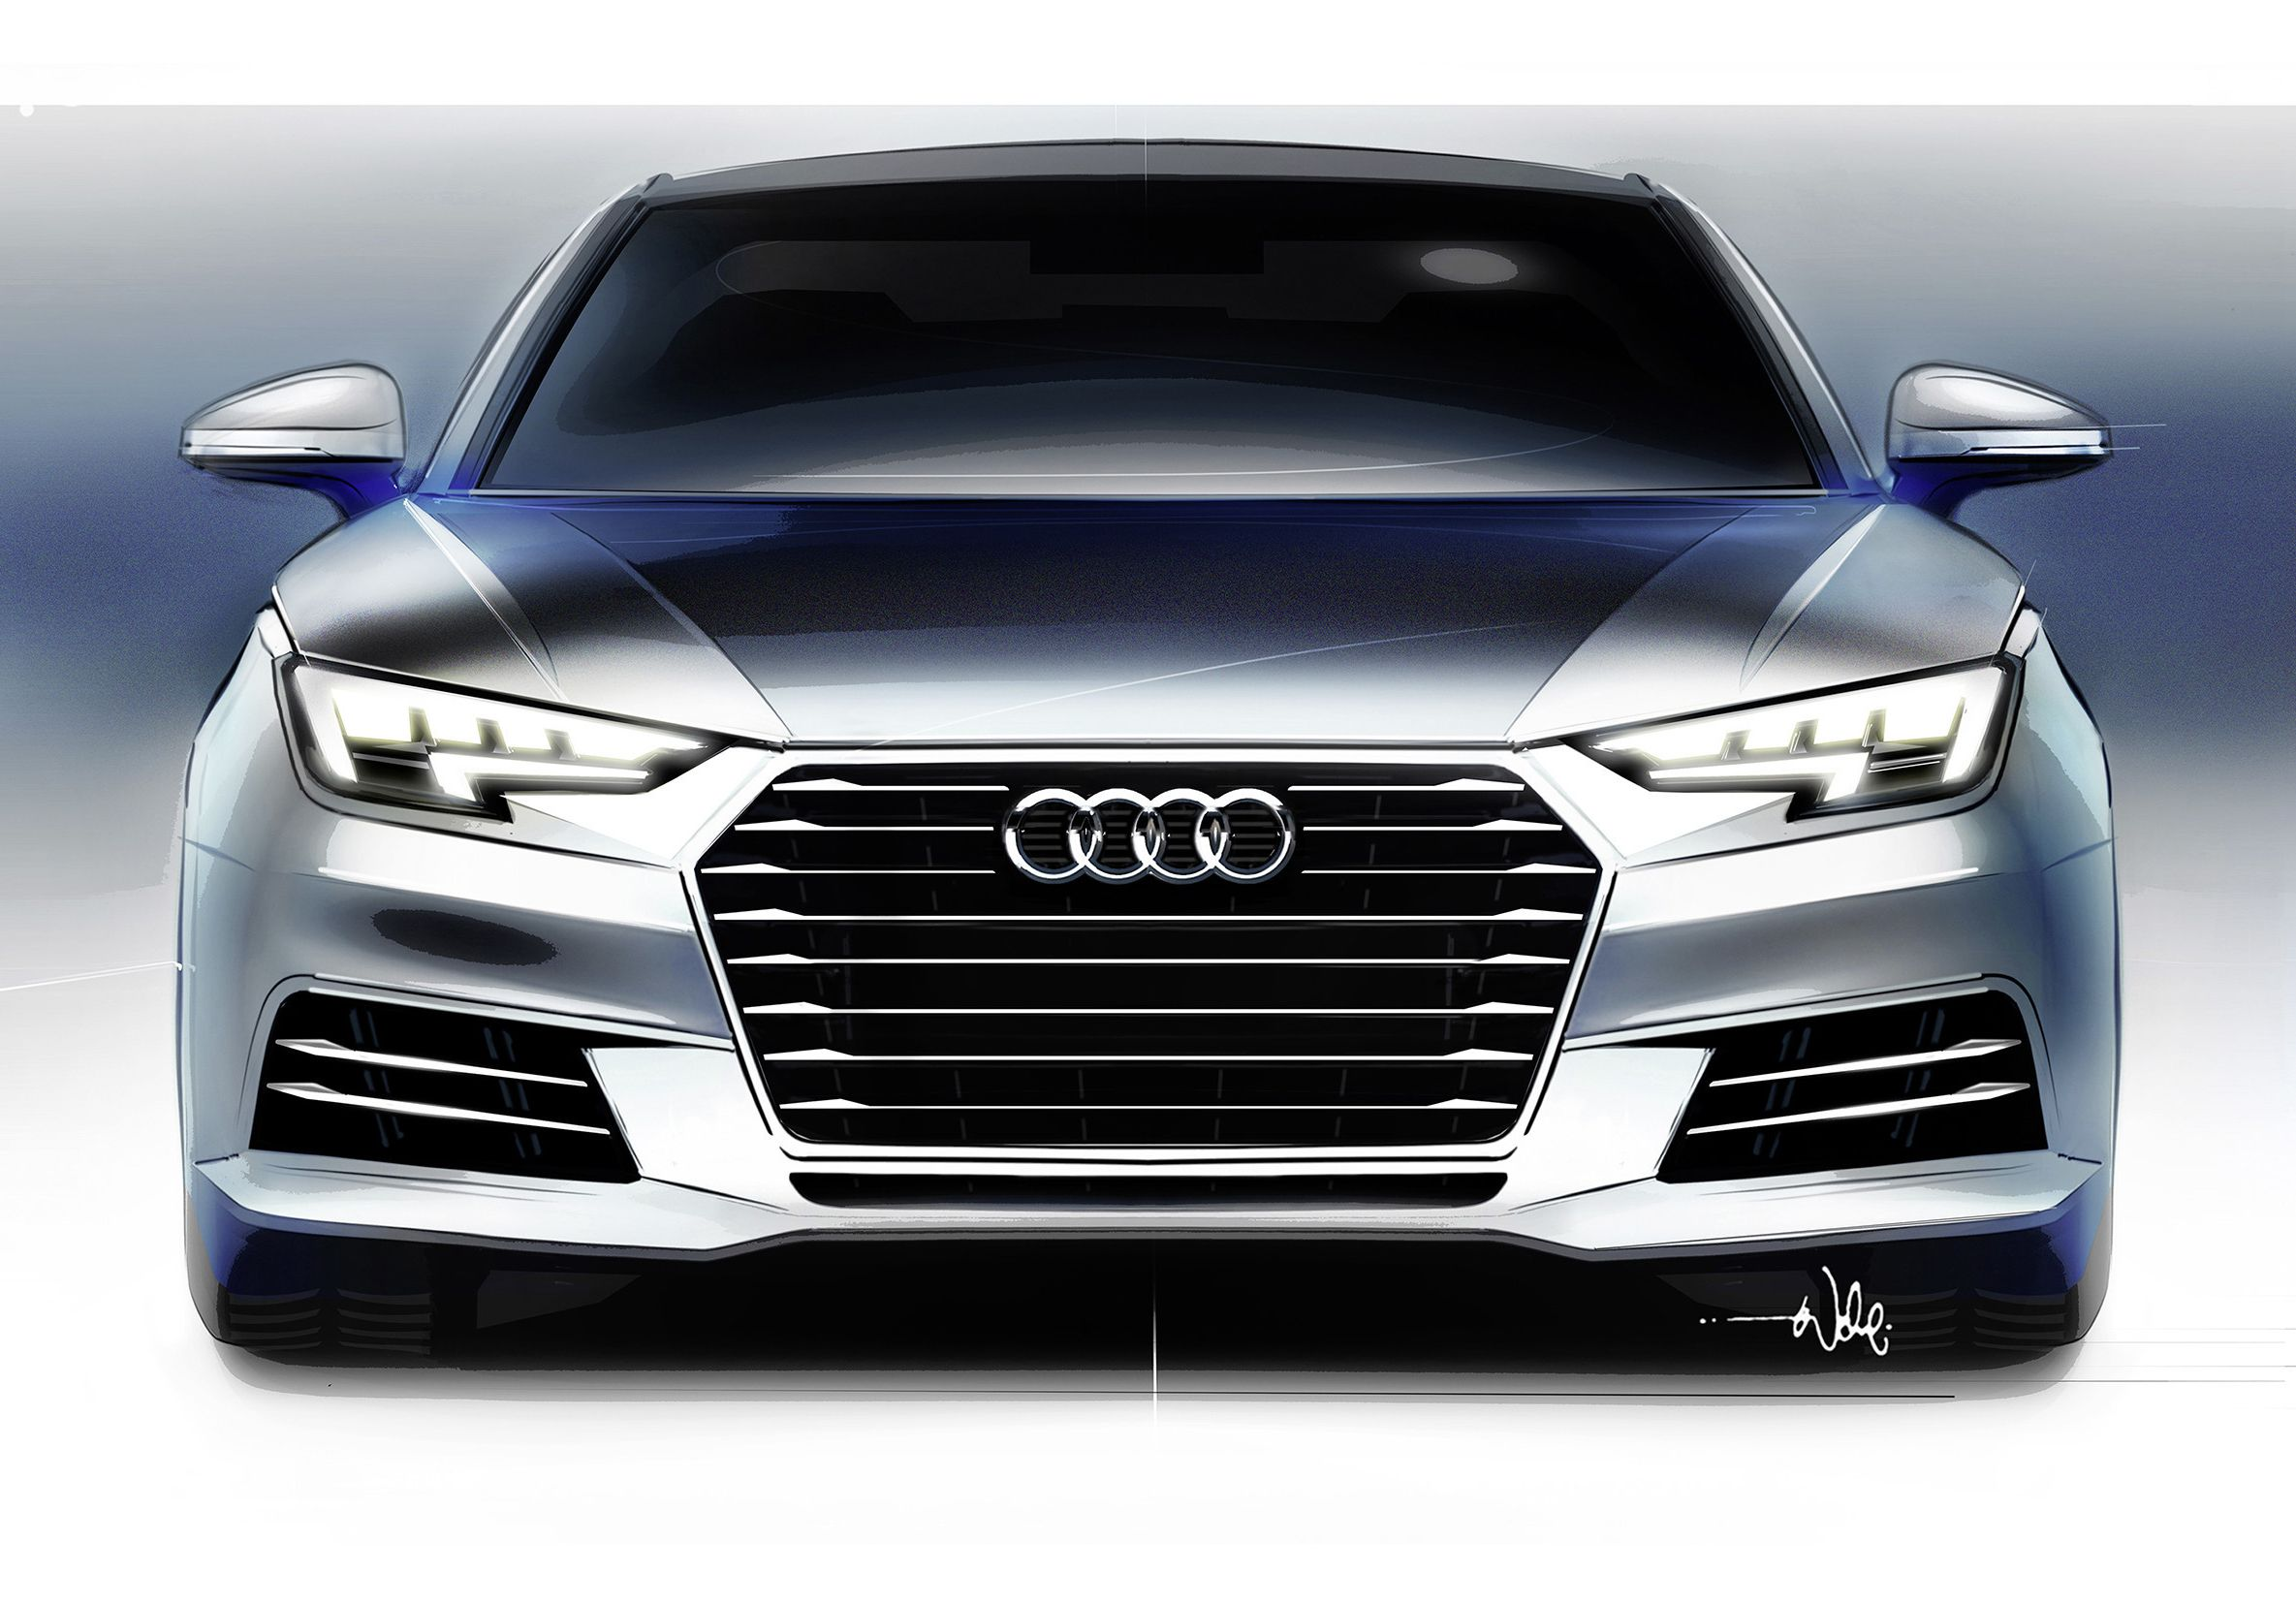 Pin By Swaroop Roy On Hot Sketches Pinterest Audi Cars And Audi